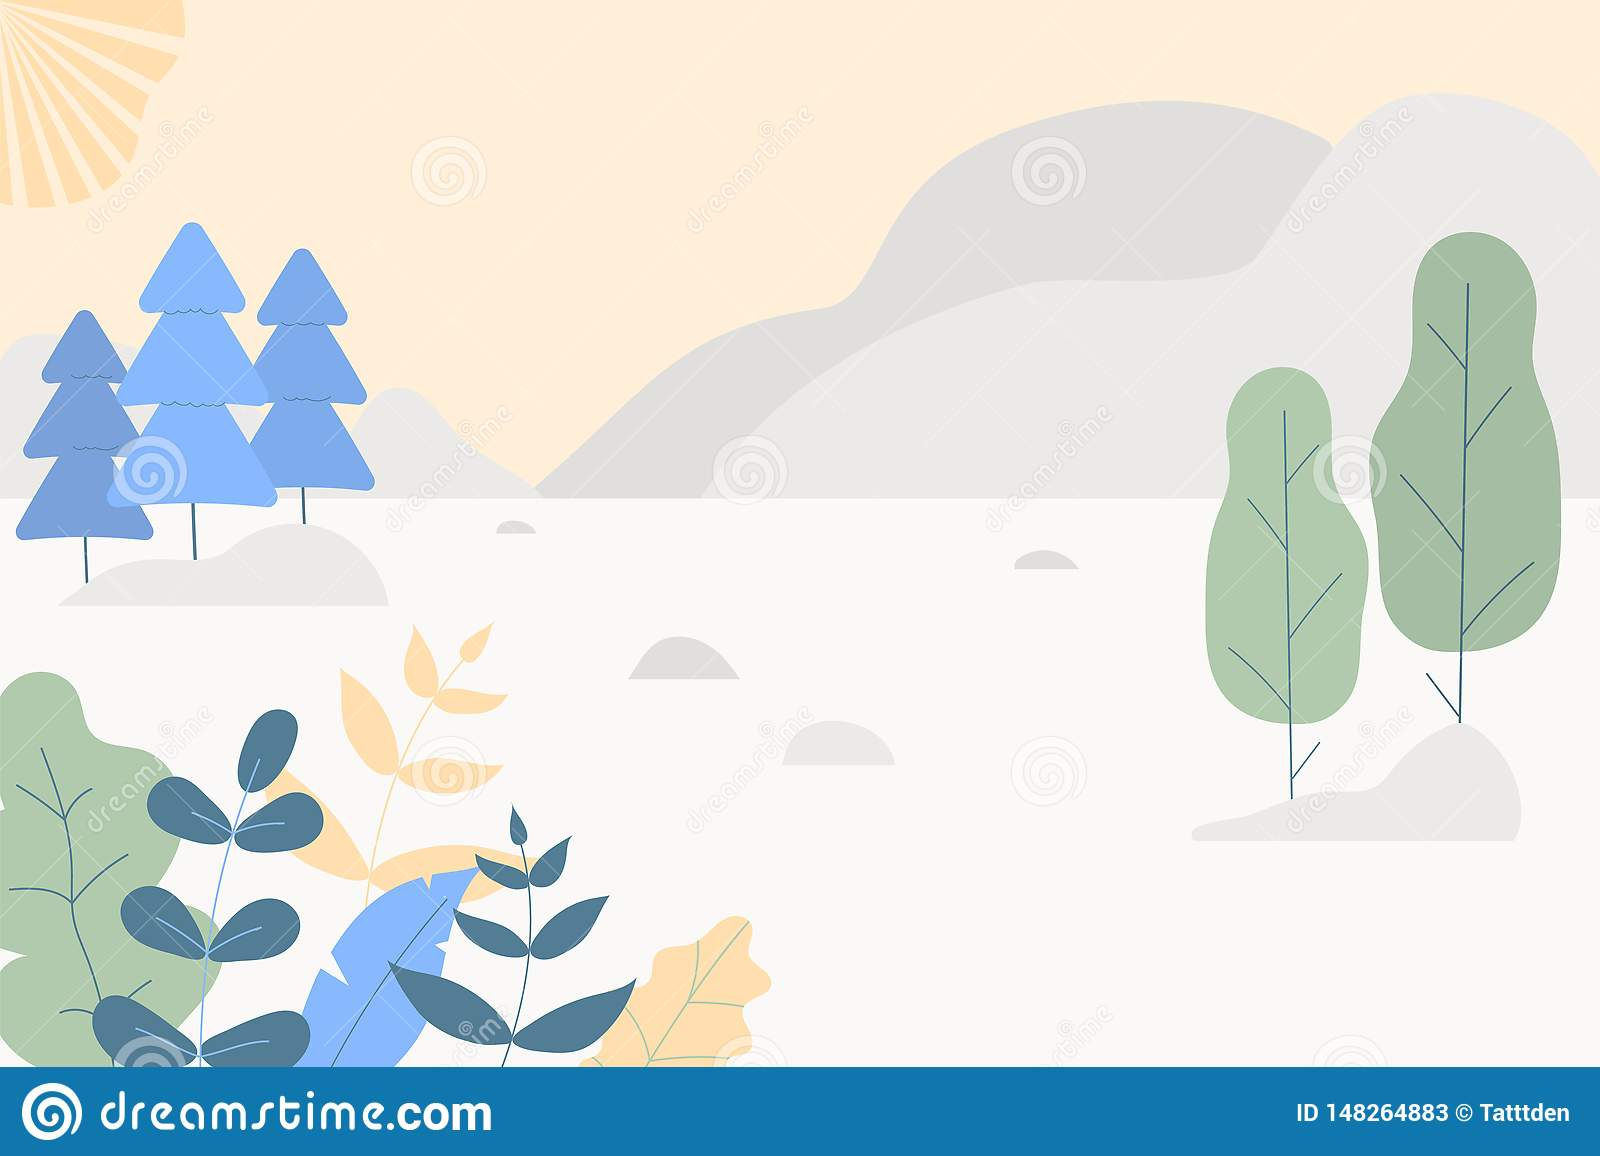 Fantasy cute landscape. Trendy fashion plants, leaves,mountains,sun and nature in minimalistic flat design style. Bushes, trees,